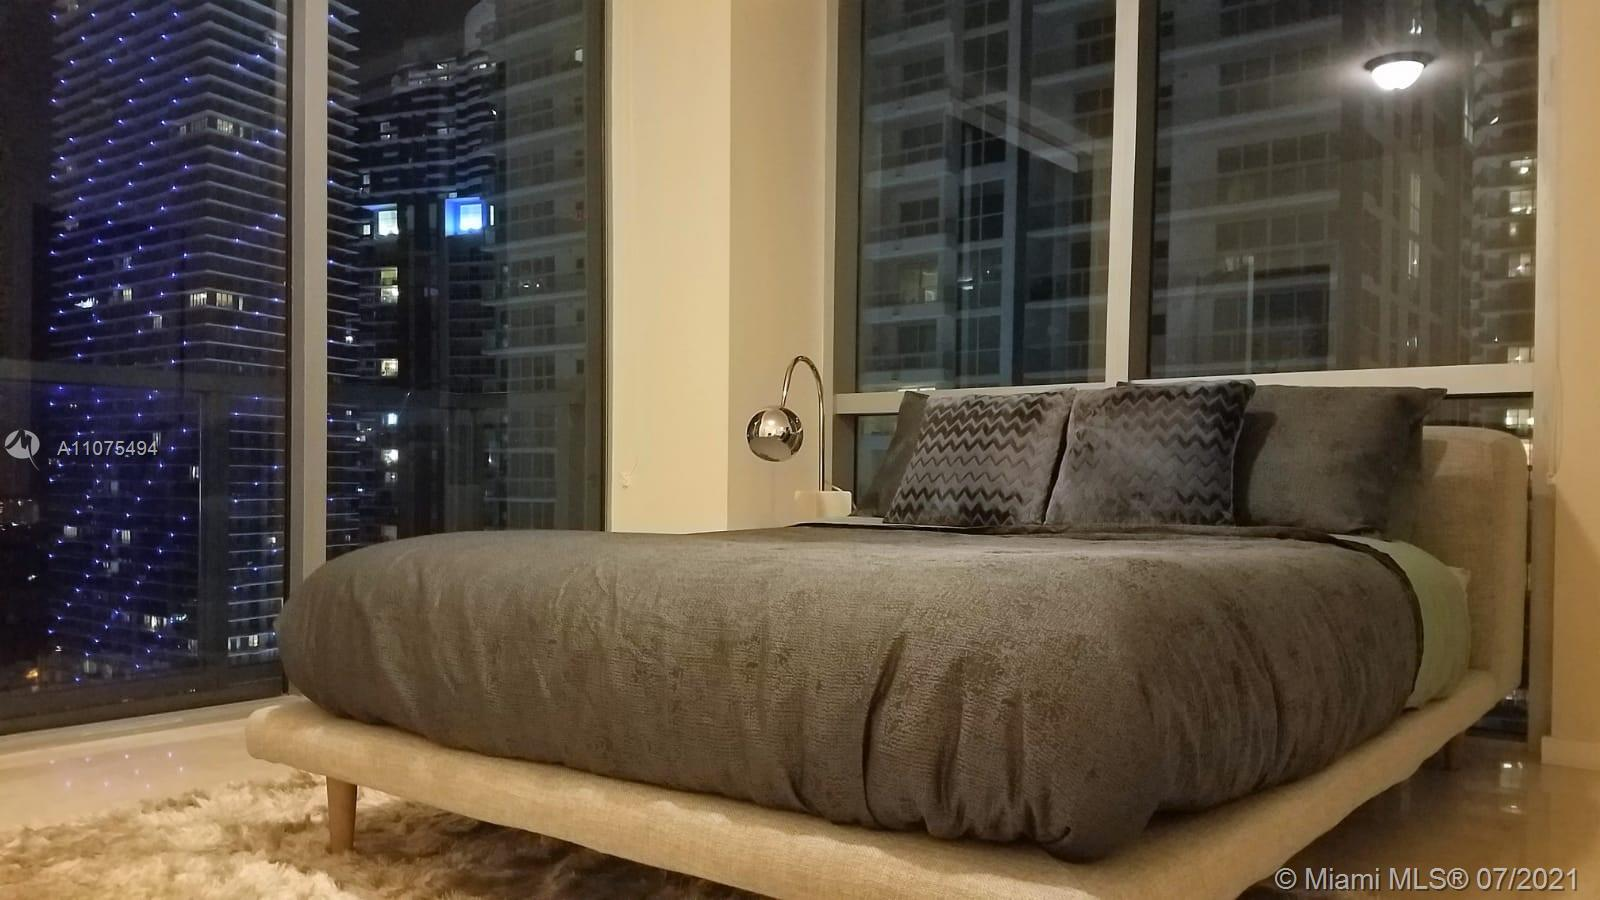 Amazing Corner unit 2 bedrooms and 2 bathrooms in the heart of Brickell. One assigned parking space. for Showings Instructions Please text listing agent.